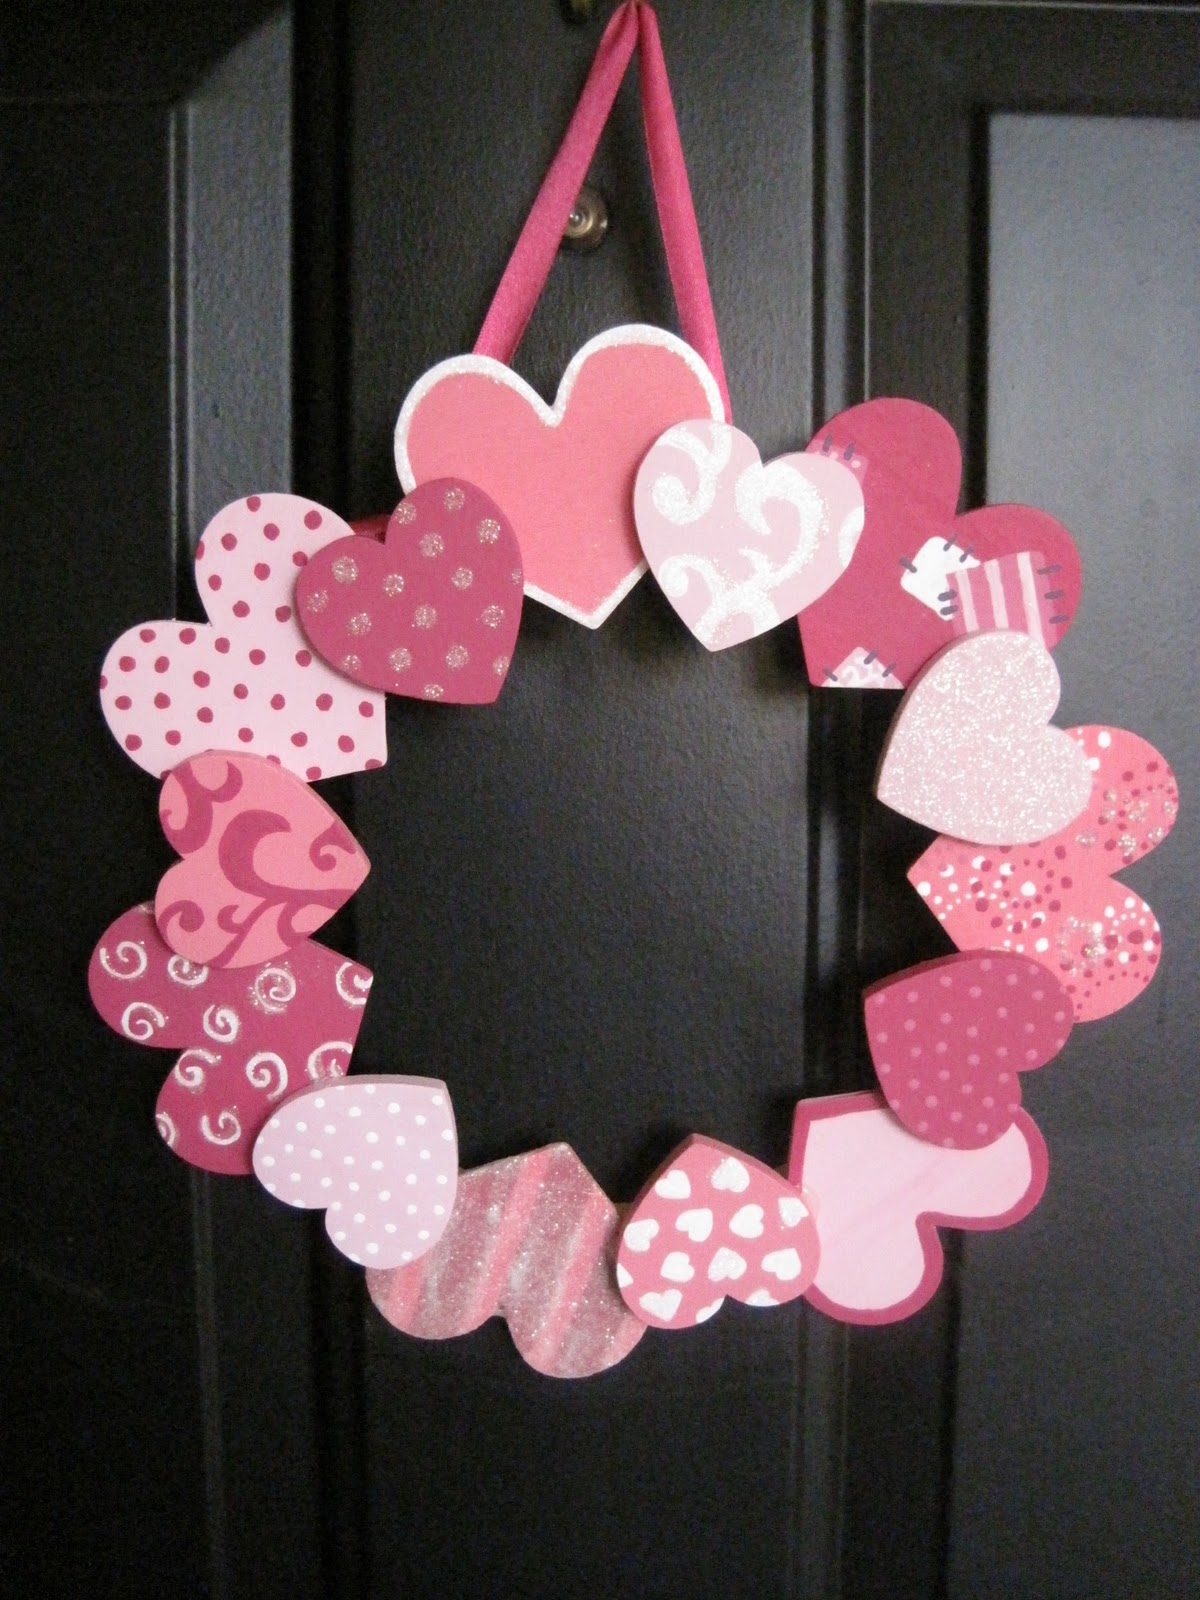 Best Valentines Decorations For Home 6